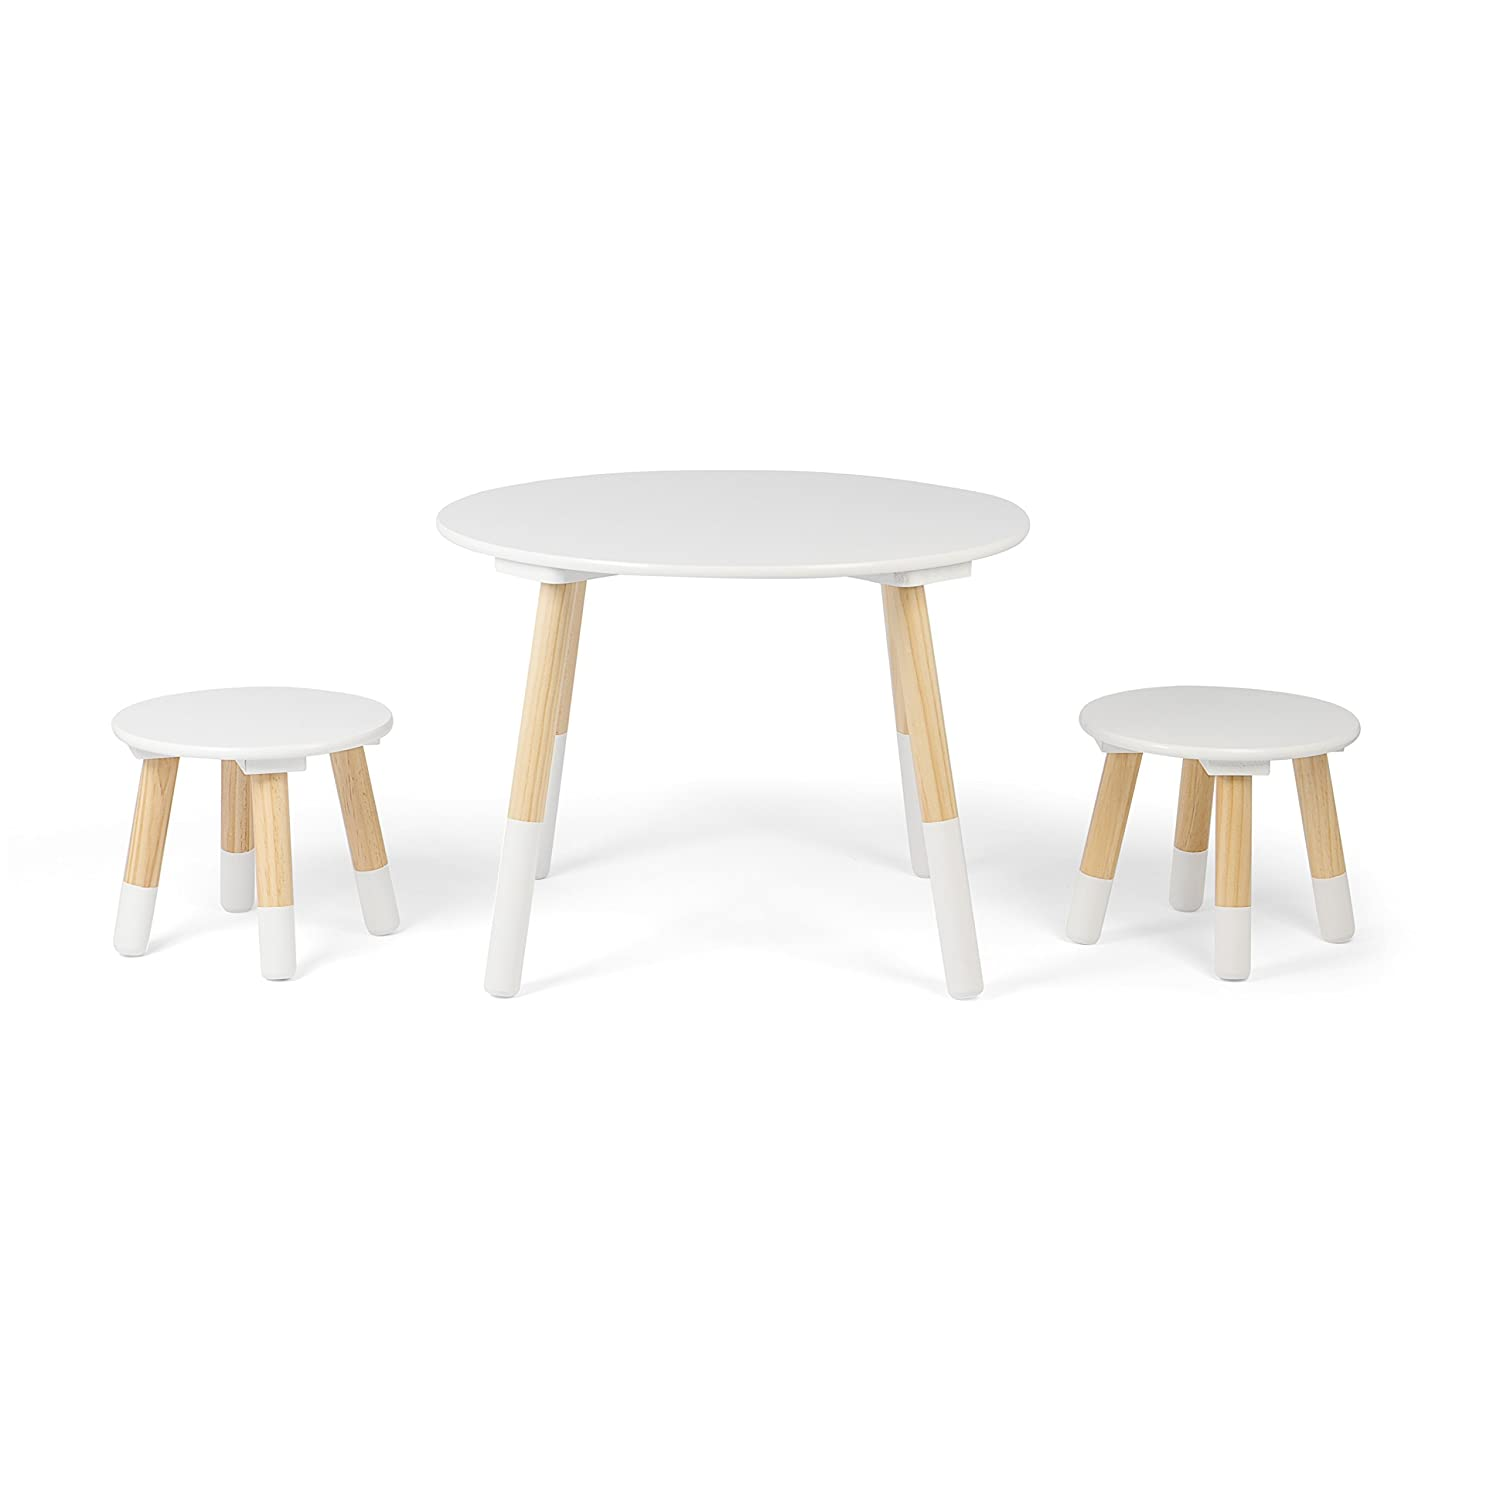 Kledio Children's Table and Chair Set – Round Kid's Table Made of Wood, Including 2 Stools – Children's Furniture Set Perfect for Kid's Bedroom KL-4445